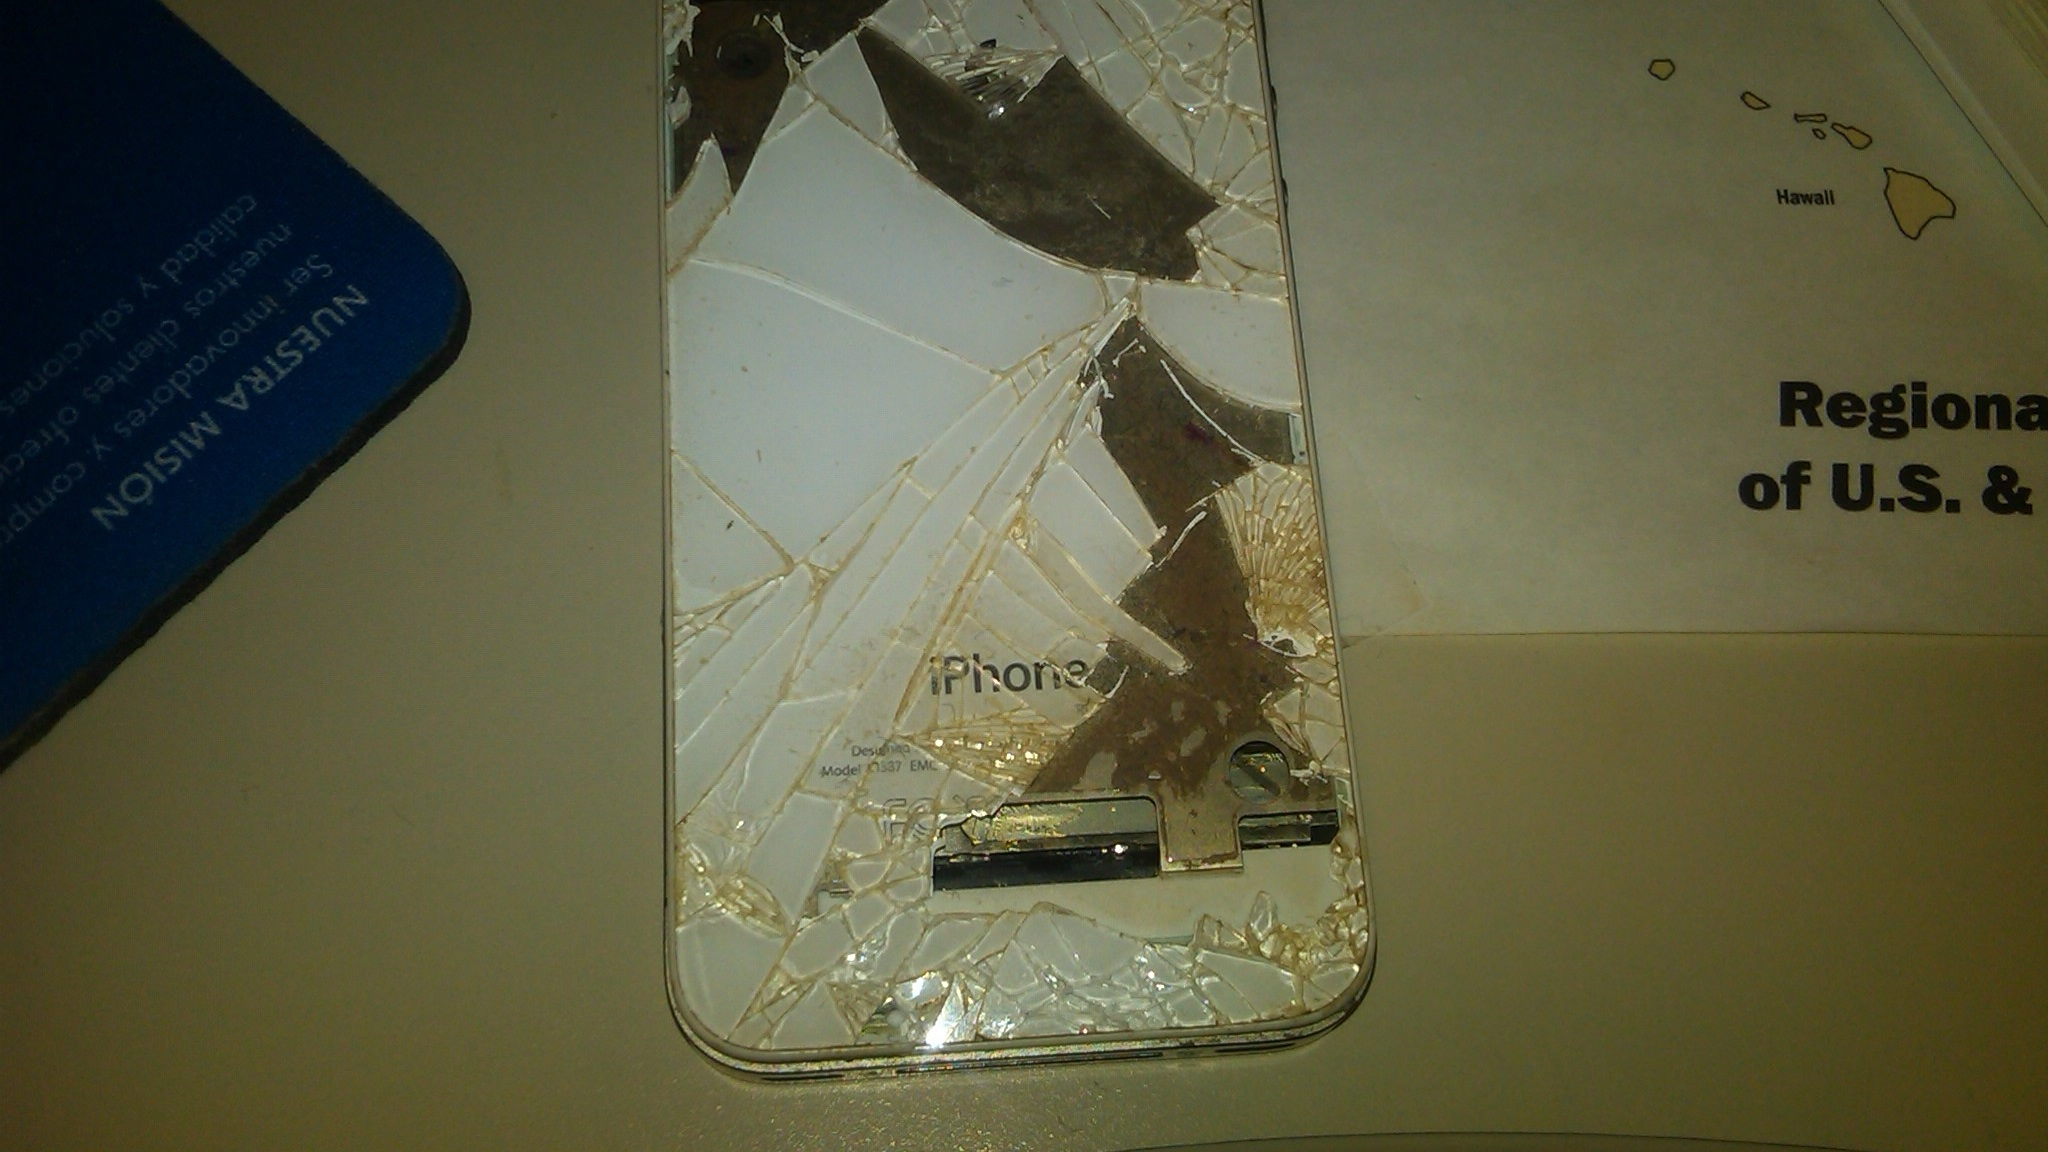 iPhone 4S battery overheating